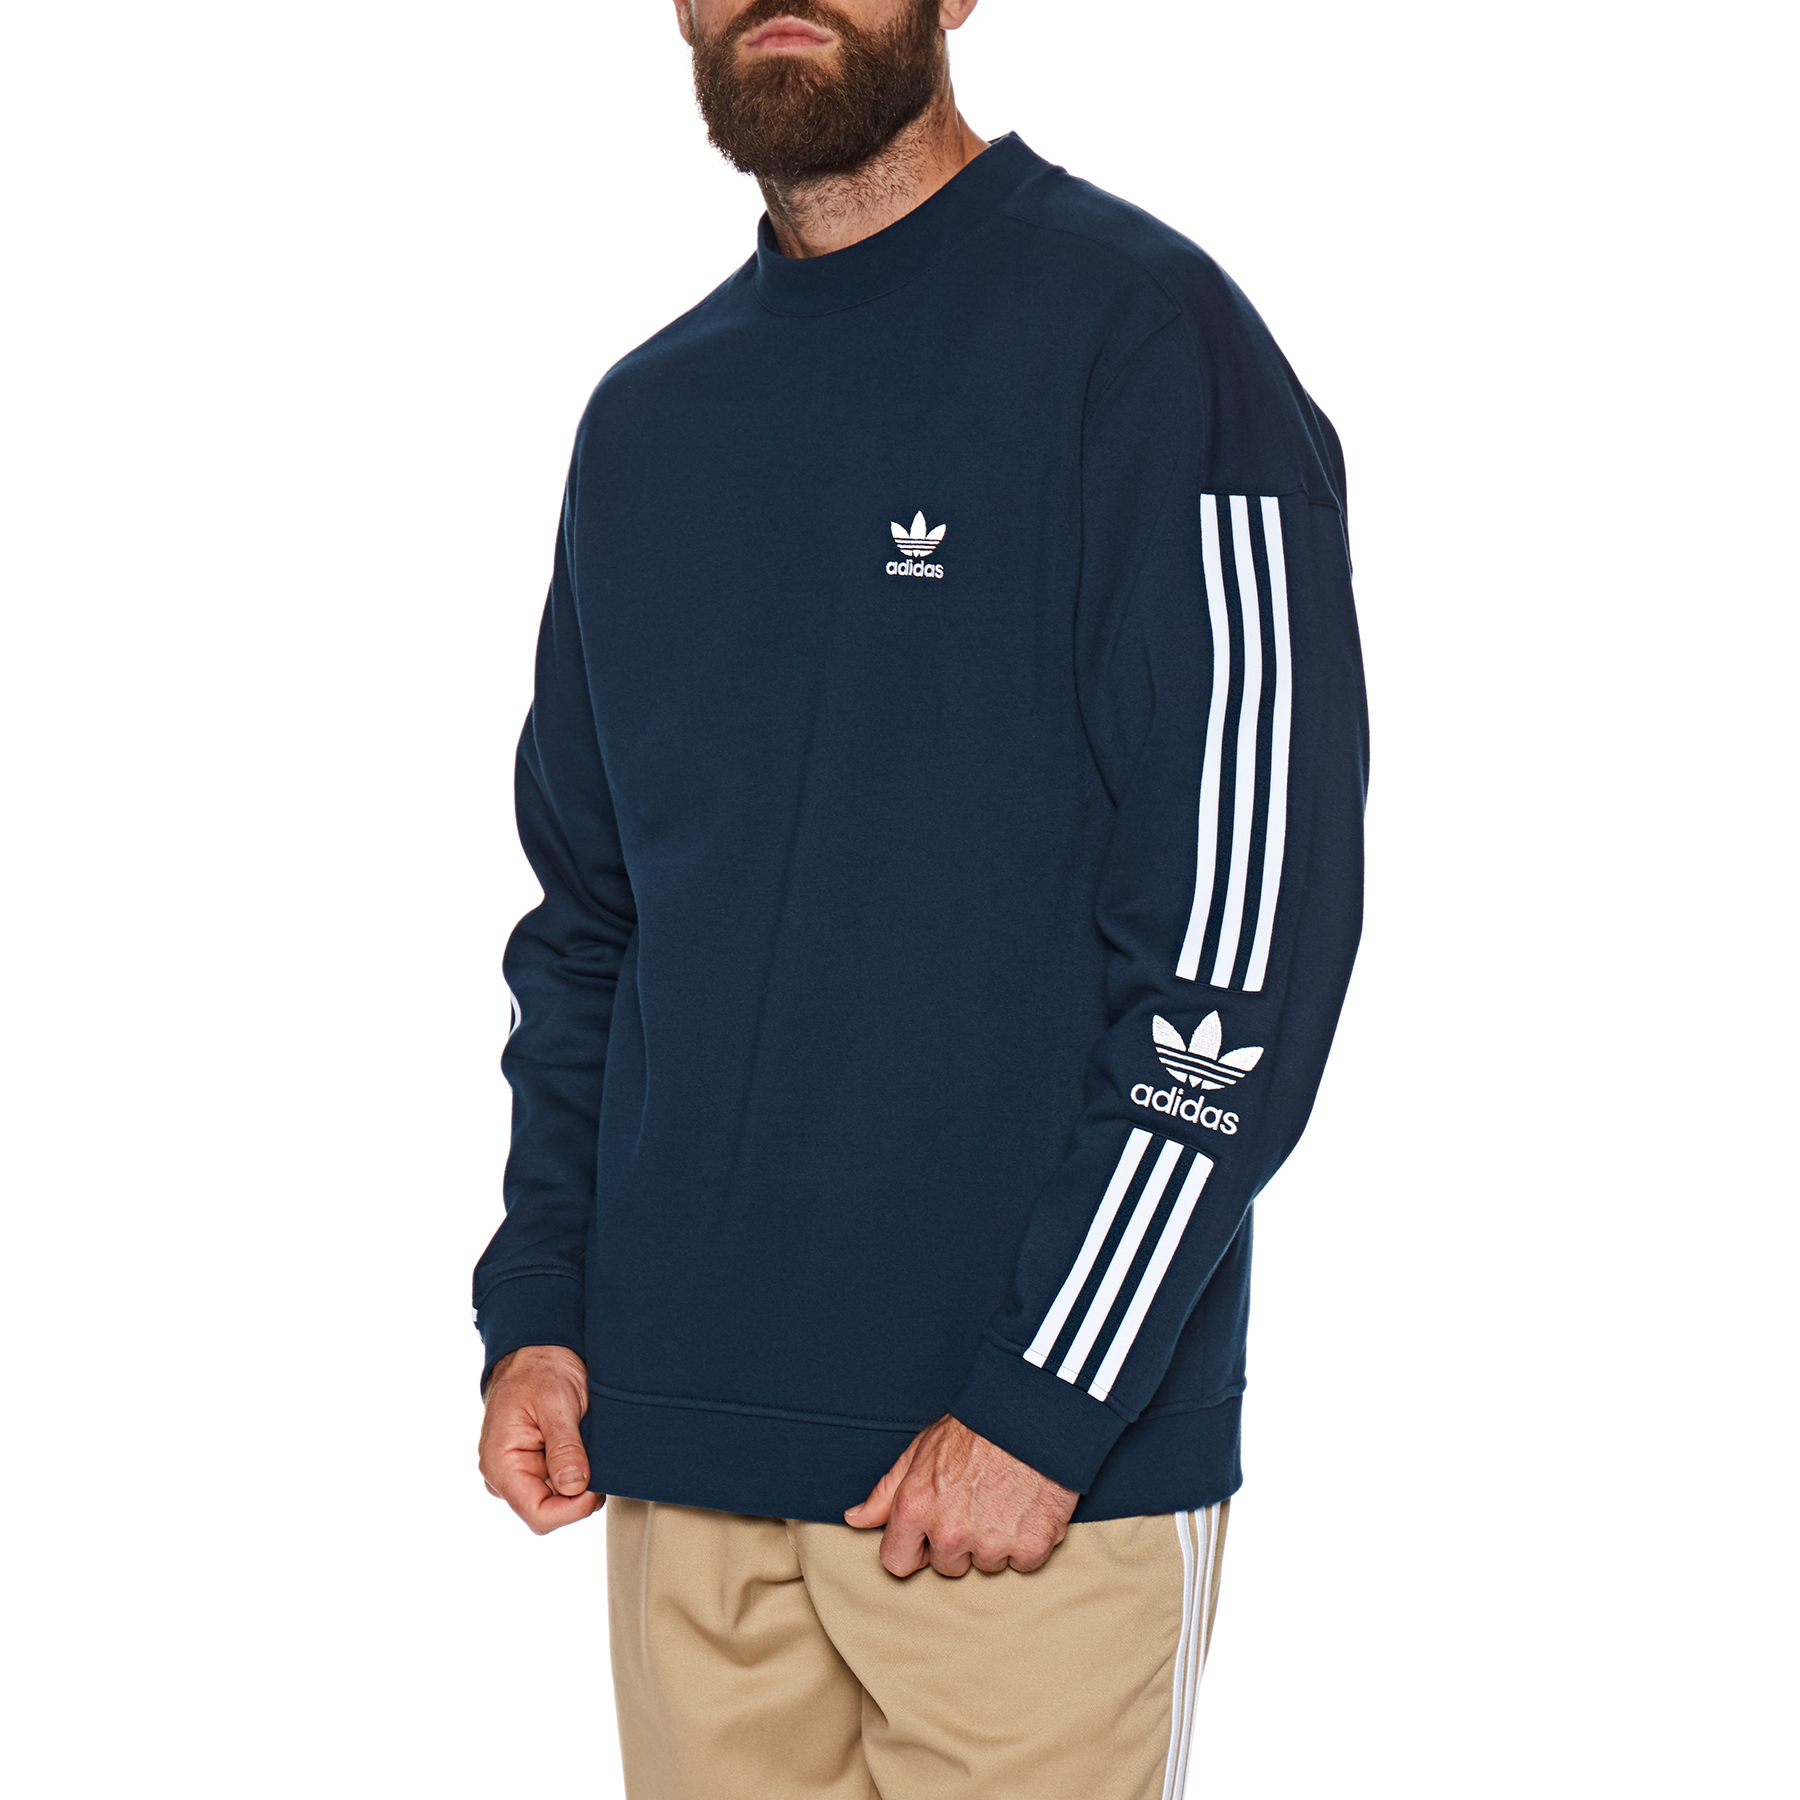 Adidas Originals Lock Up Crew Sweater | Free Delivery Options